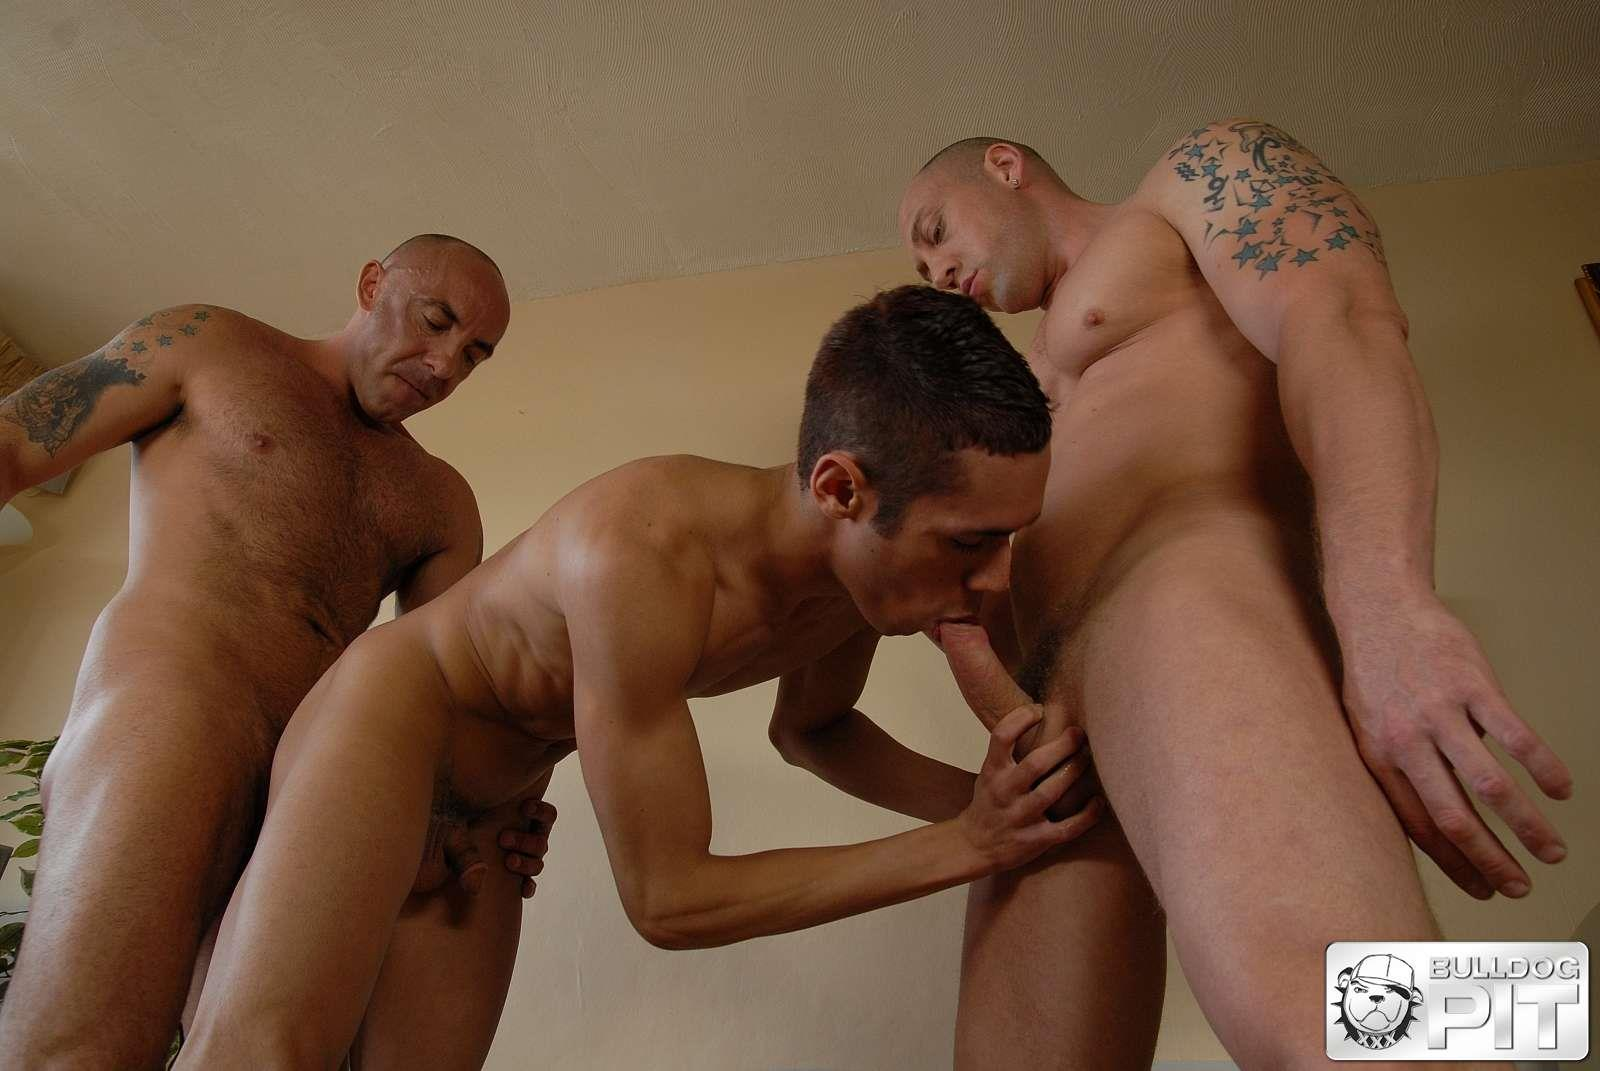 Bulldog-Pit-Myles-Bentley-Duke-Michaels-and-Giovanni-Summers-Thick-Uncut-Cock-Muscle-Daddys-Fucking-A-Twink-Amateur-Gay-Porn-18 Muscle Daddy Brothers Feed Their Thick Uncut Cocks To A Sexy Twink